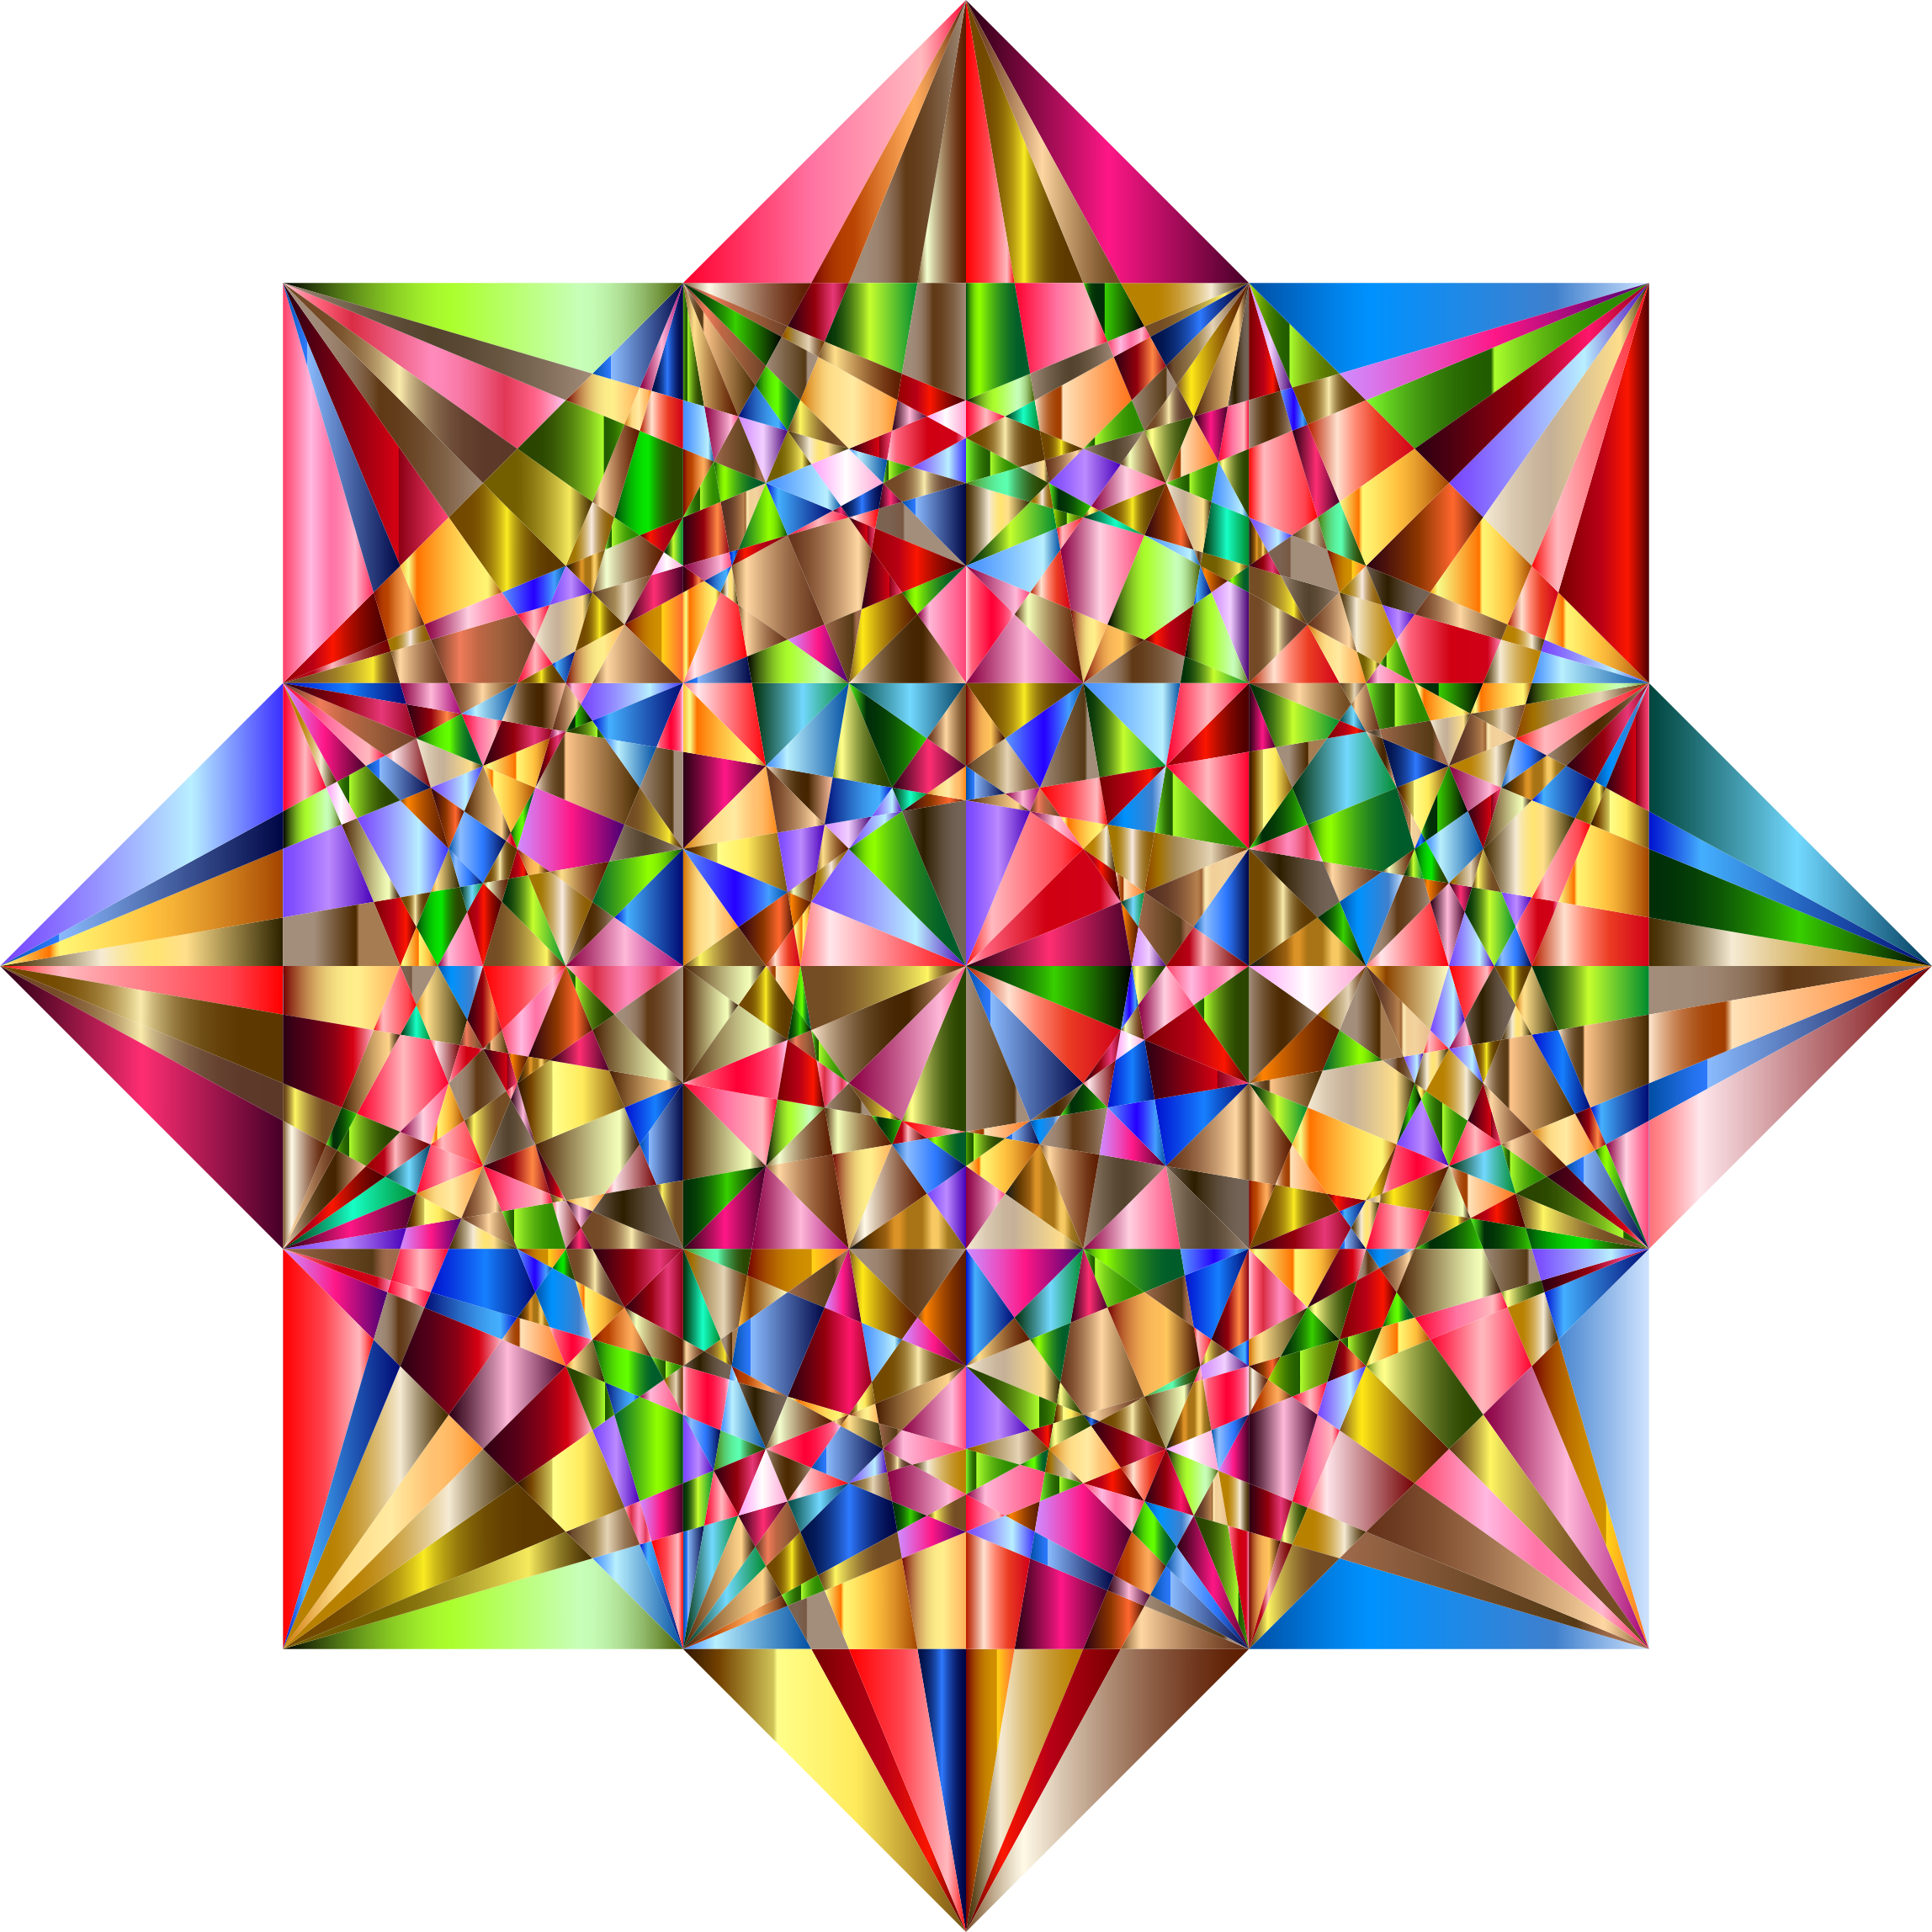 Prismatic Geometric Star 3 by GDJ